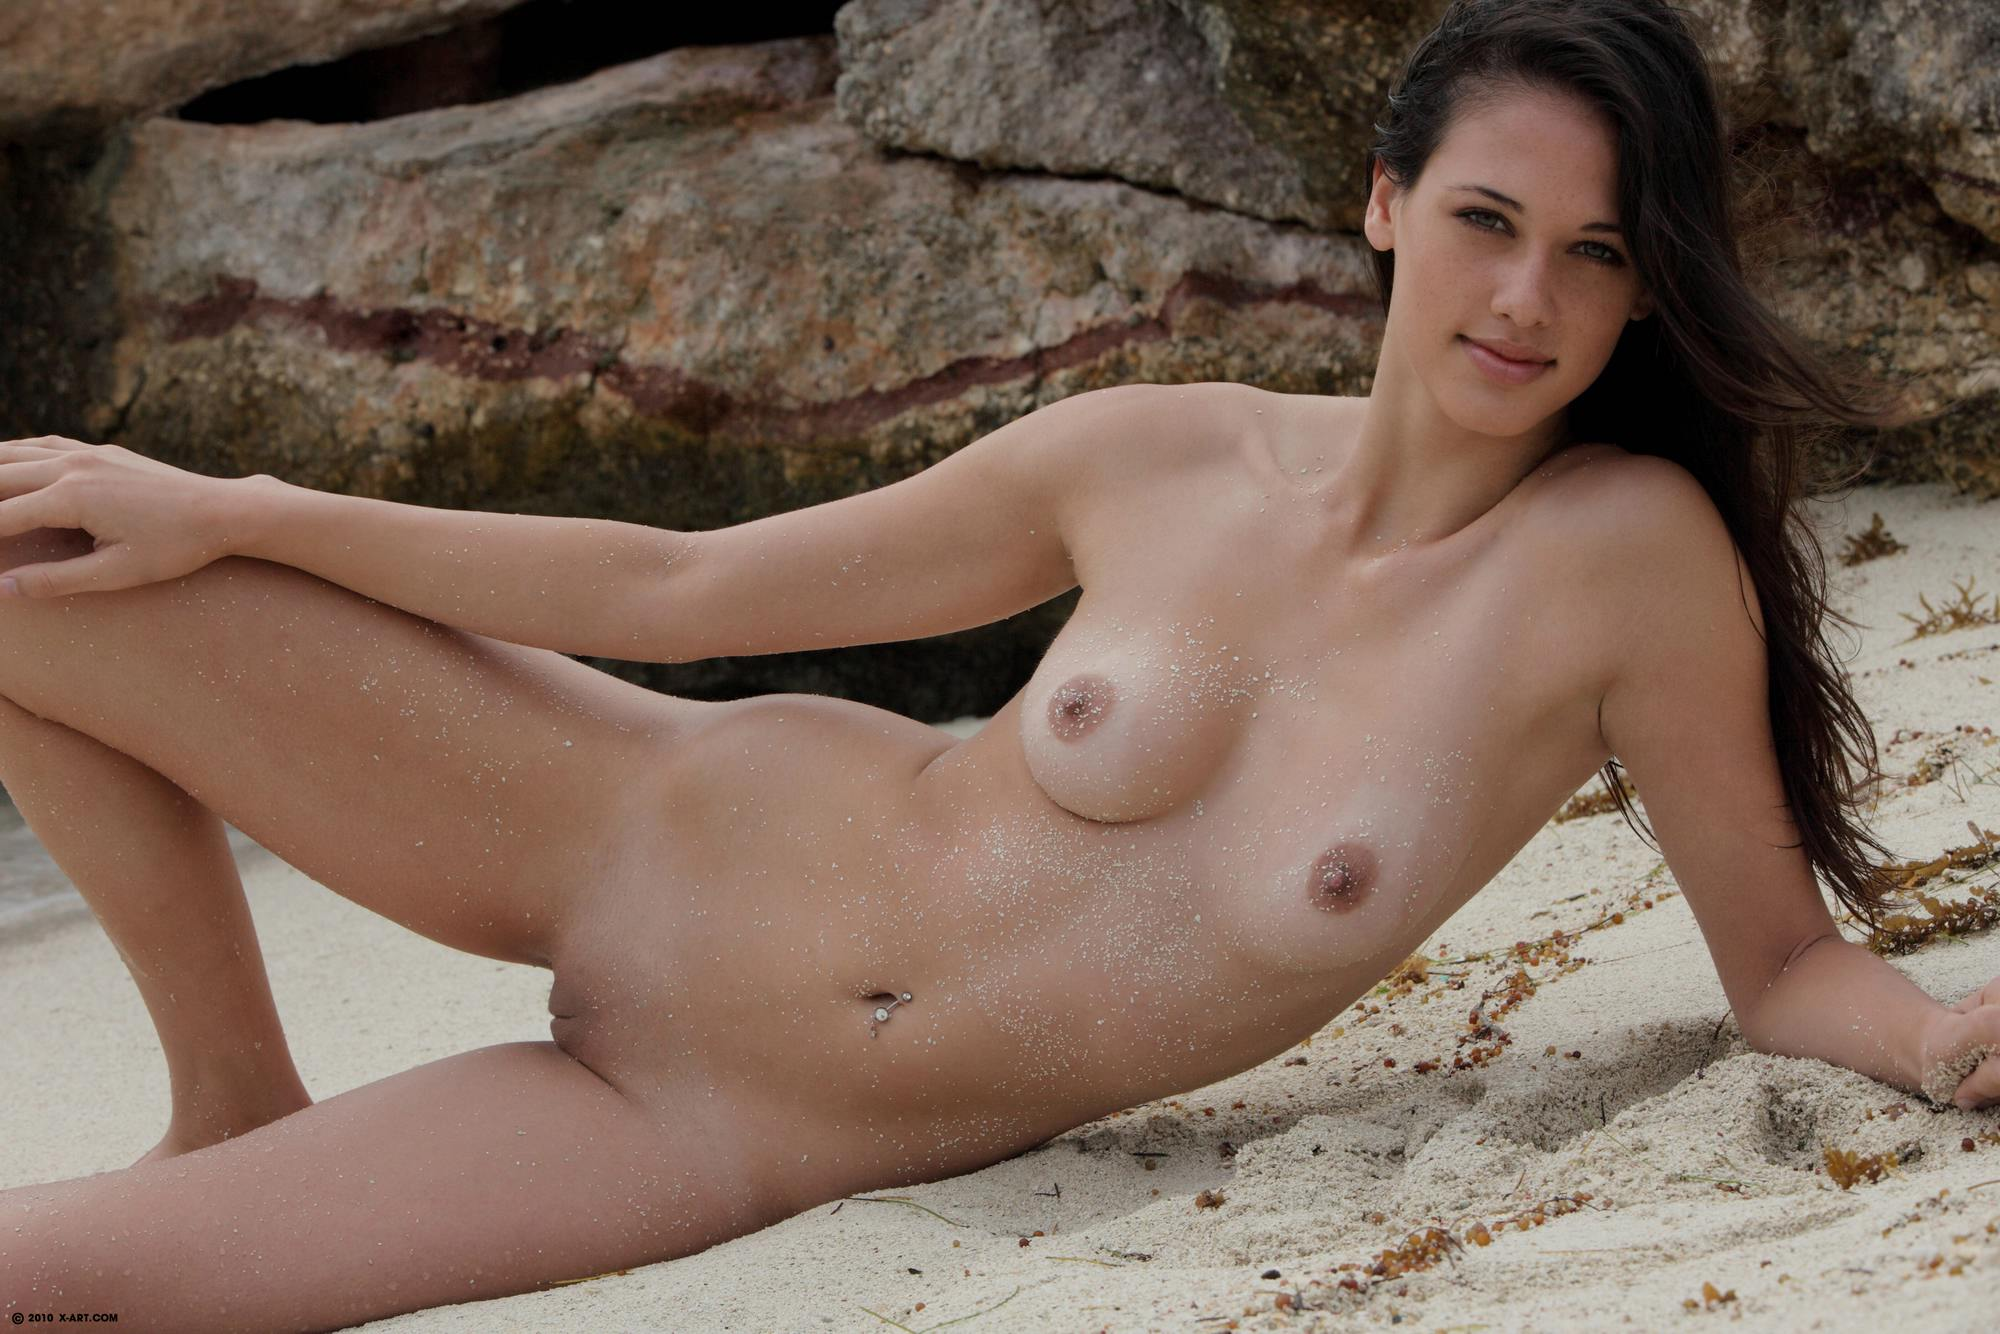 Beautiful nude girl : Naked Girls